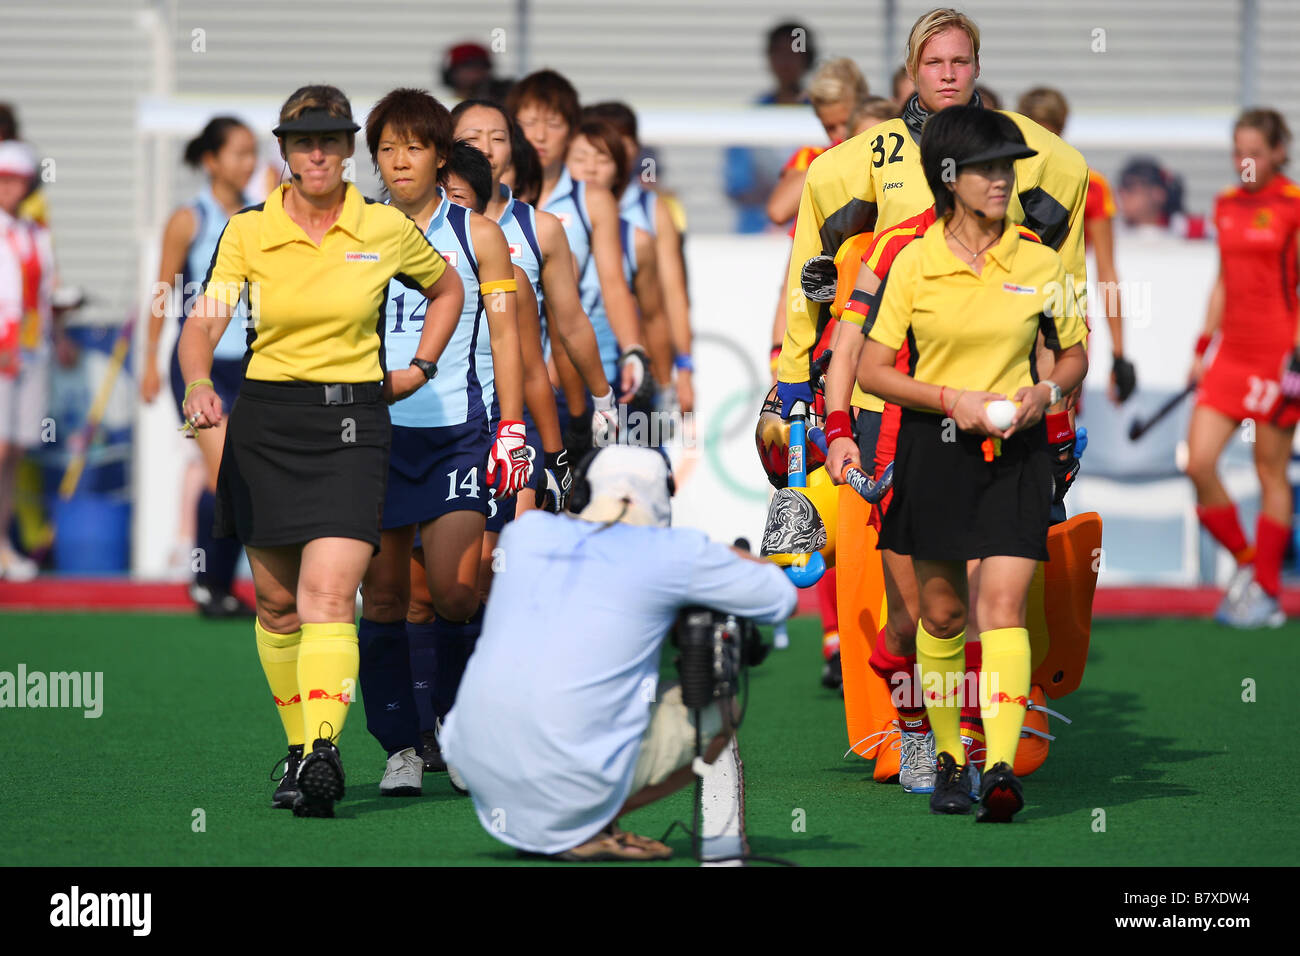 Japan Womens team group JPN AUGUST 18 2008 Hockey Players on the pitch Beijing 2008 Olympic Games Womens Pool WB - Stock Image